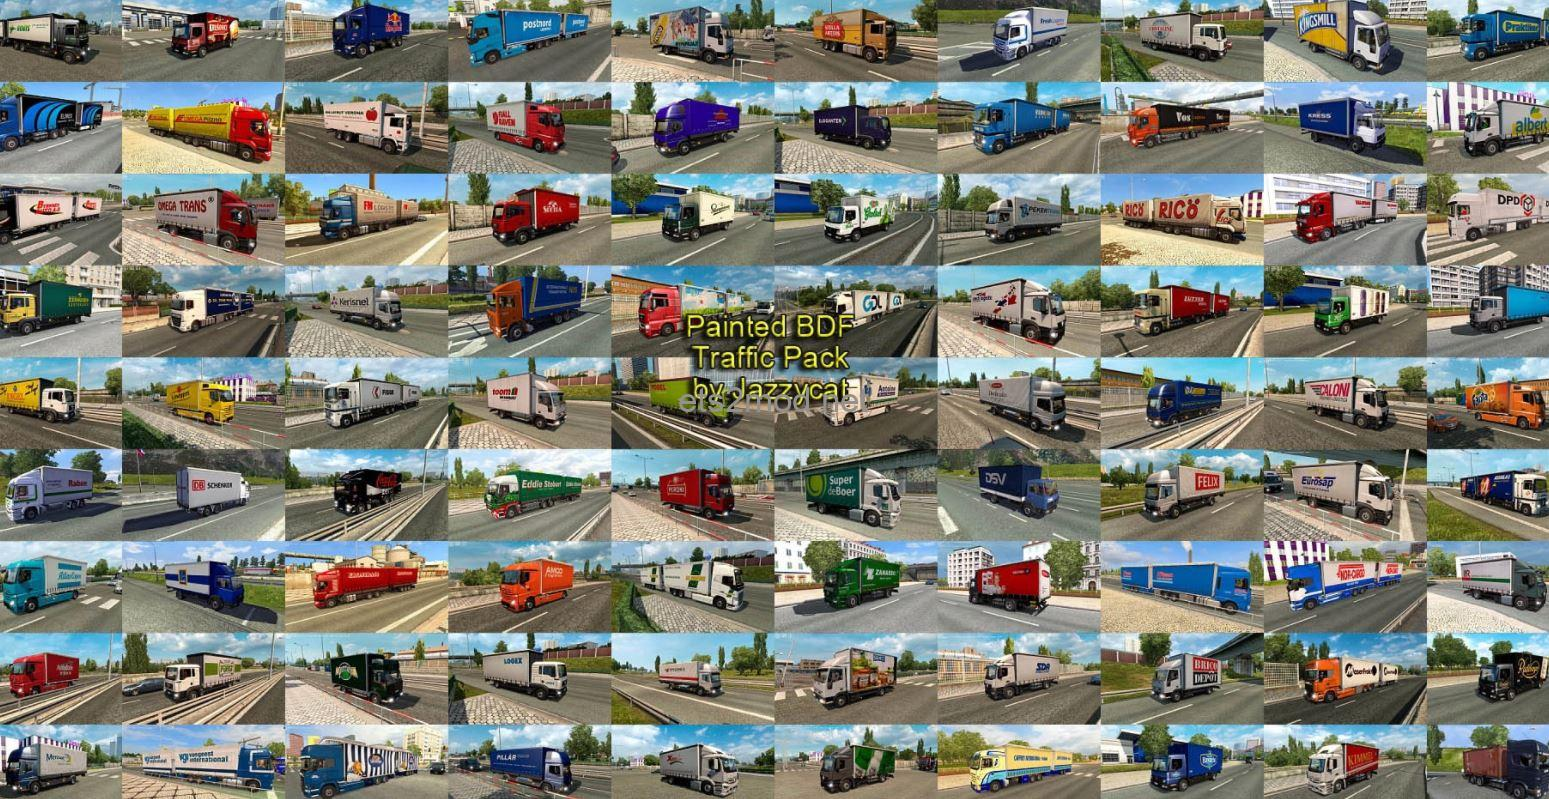 painted-bdf-traffic-pack-by-jazzycat-v10-7-ets2-mod-1